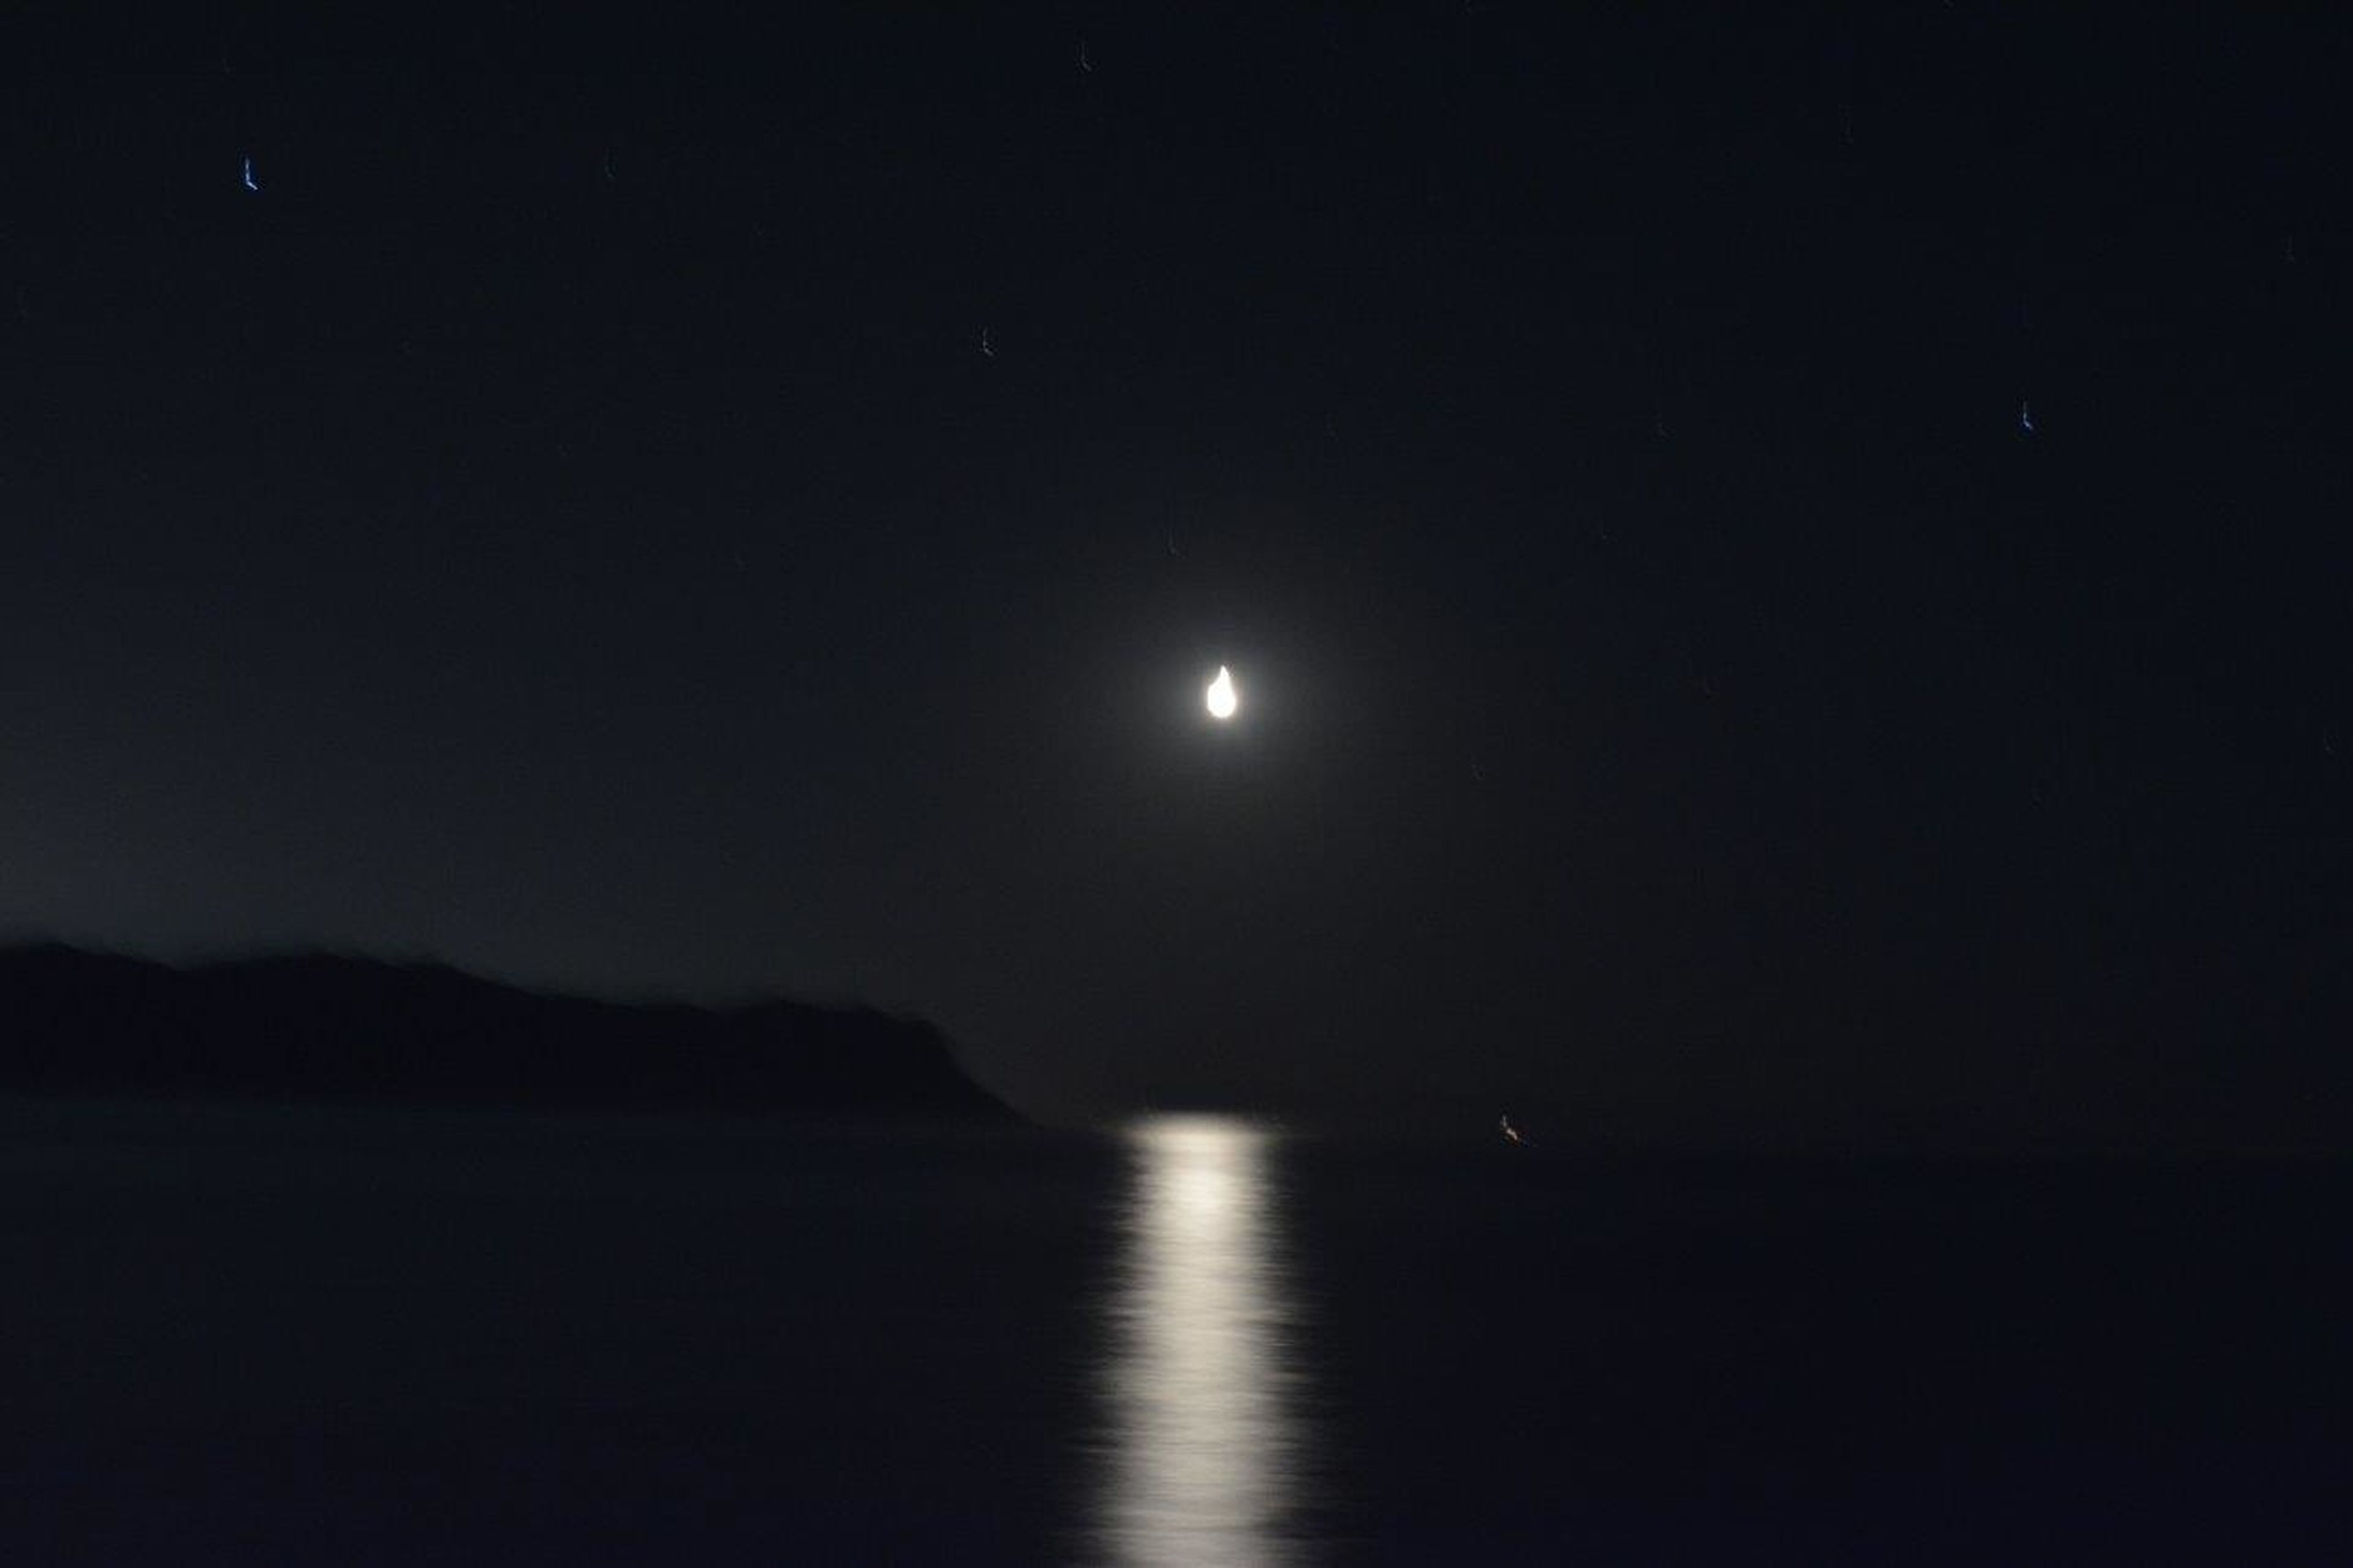 night, tranquil scene, scenics, tranquility, copy space, beauty in nature, moon, water, clear sky, nature, idyllic, dark, sky, silhouette, sea, astronomy, waterfront, illuminated, reflection, majestic